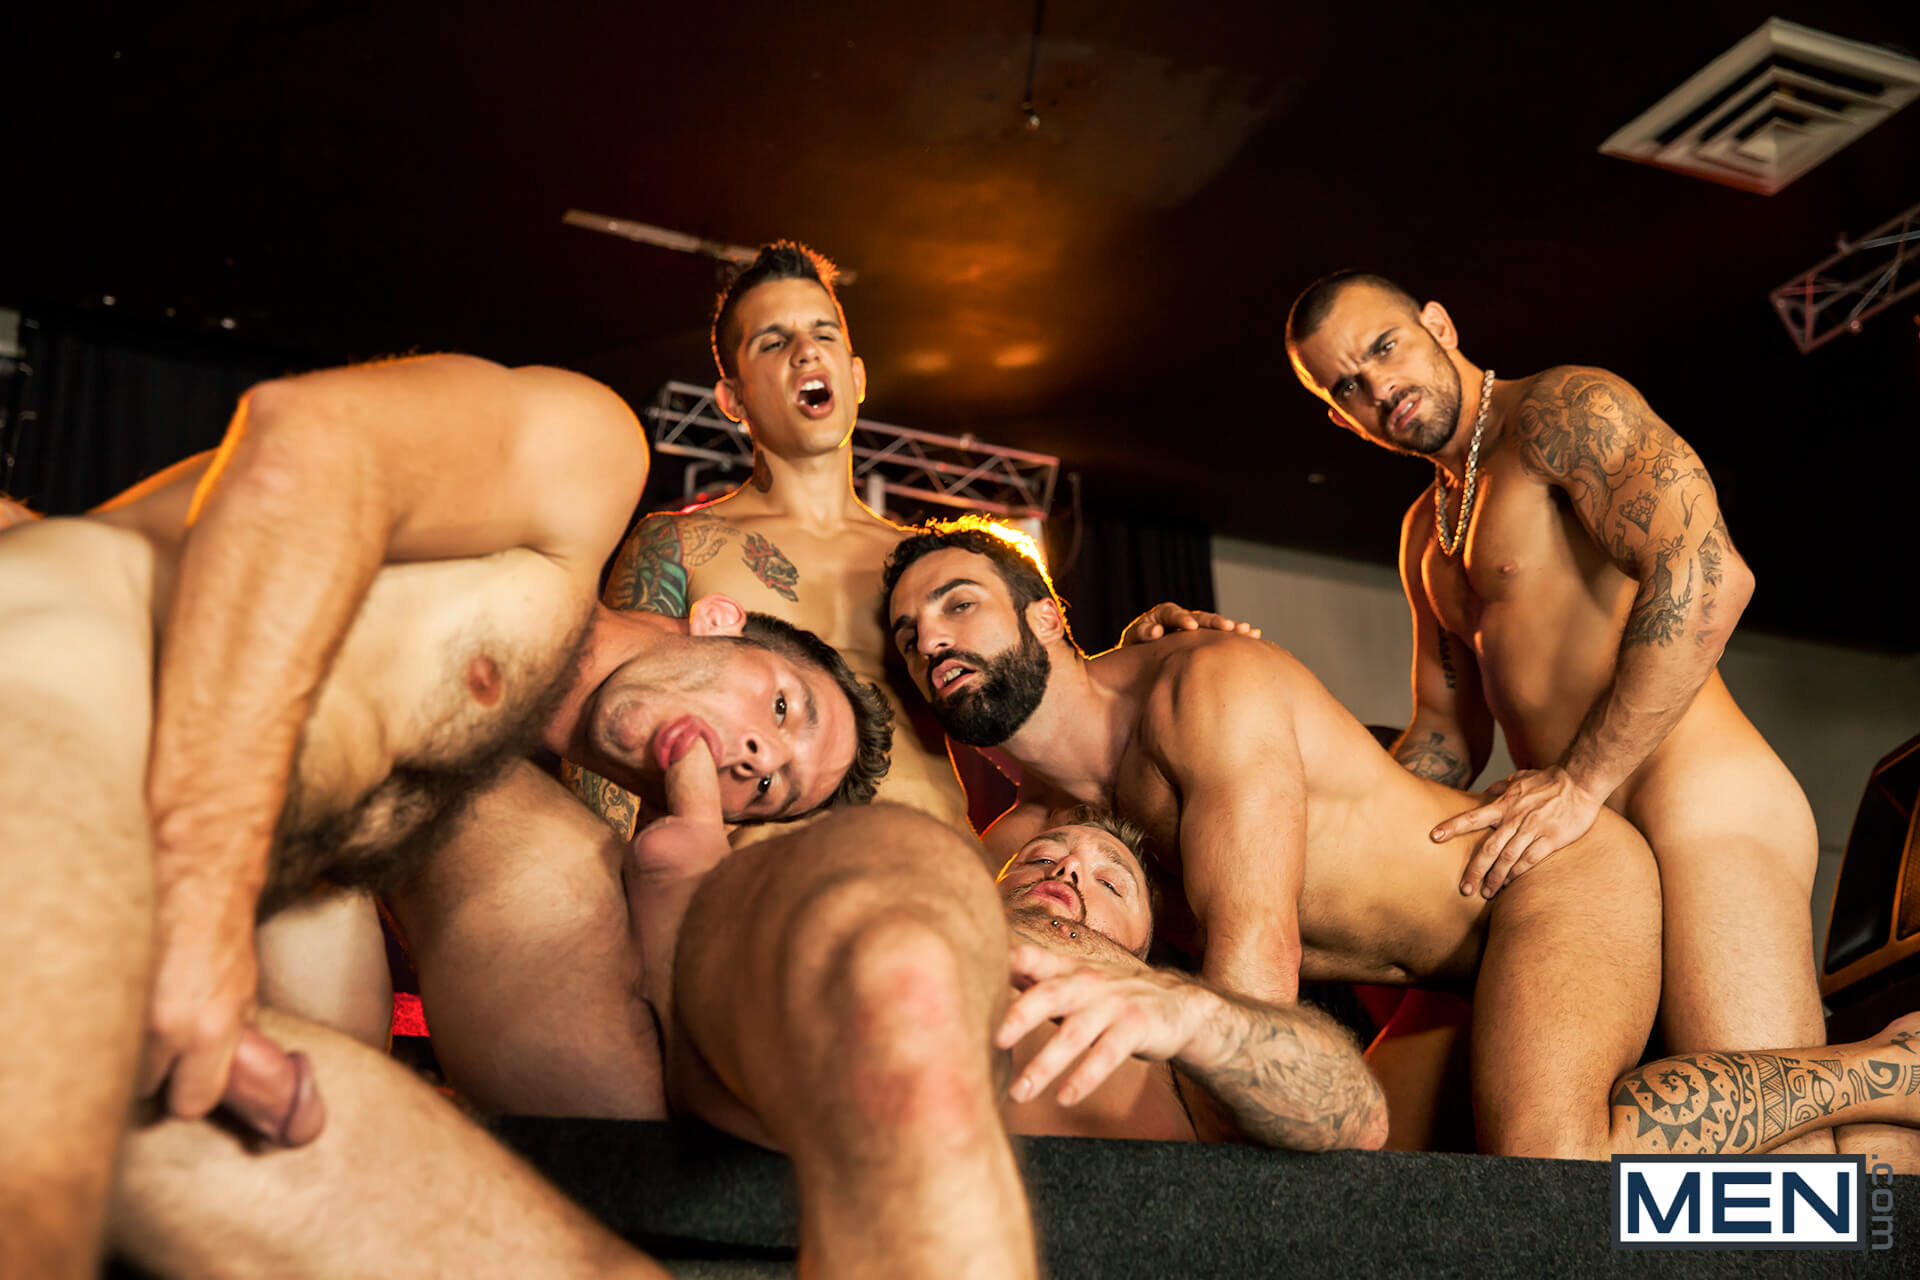 men jizz orgy thirst part 4 abraham al malek damien crosse dominique hansson jimmy fanz pierre fitch gay porn blog image 19